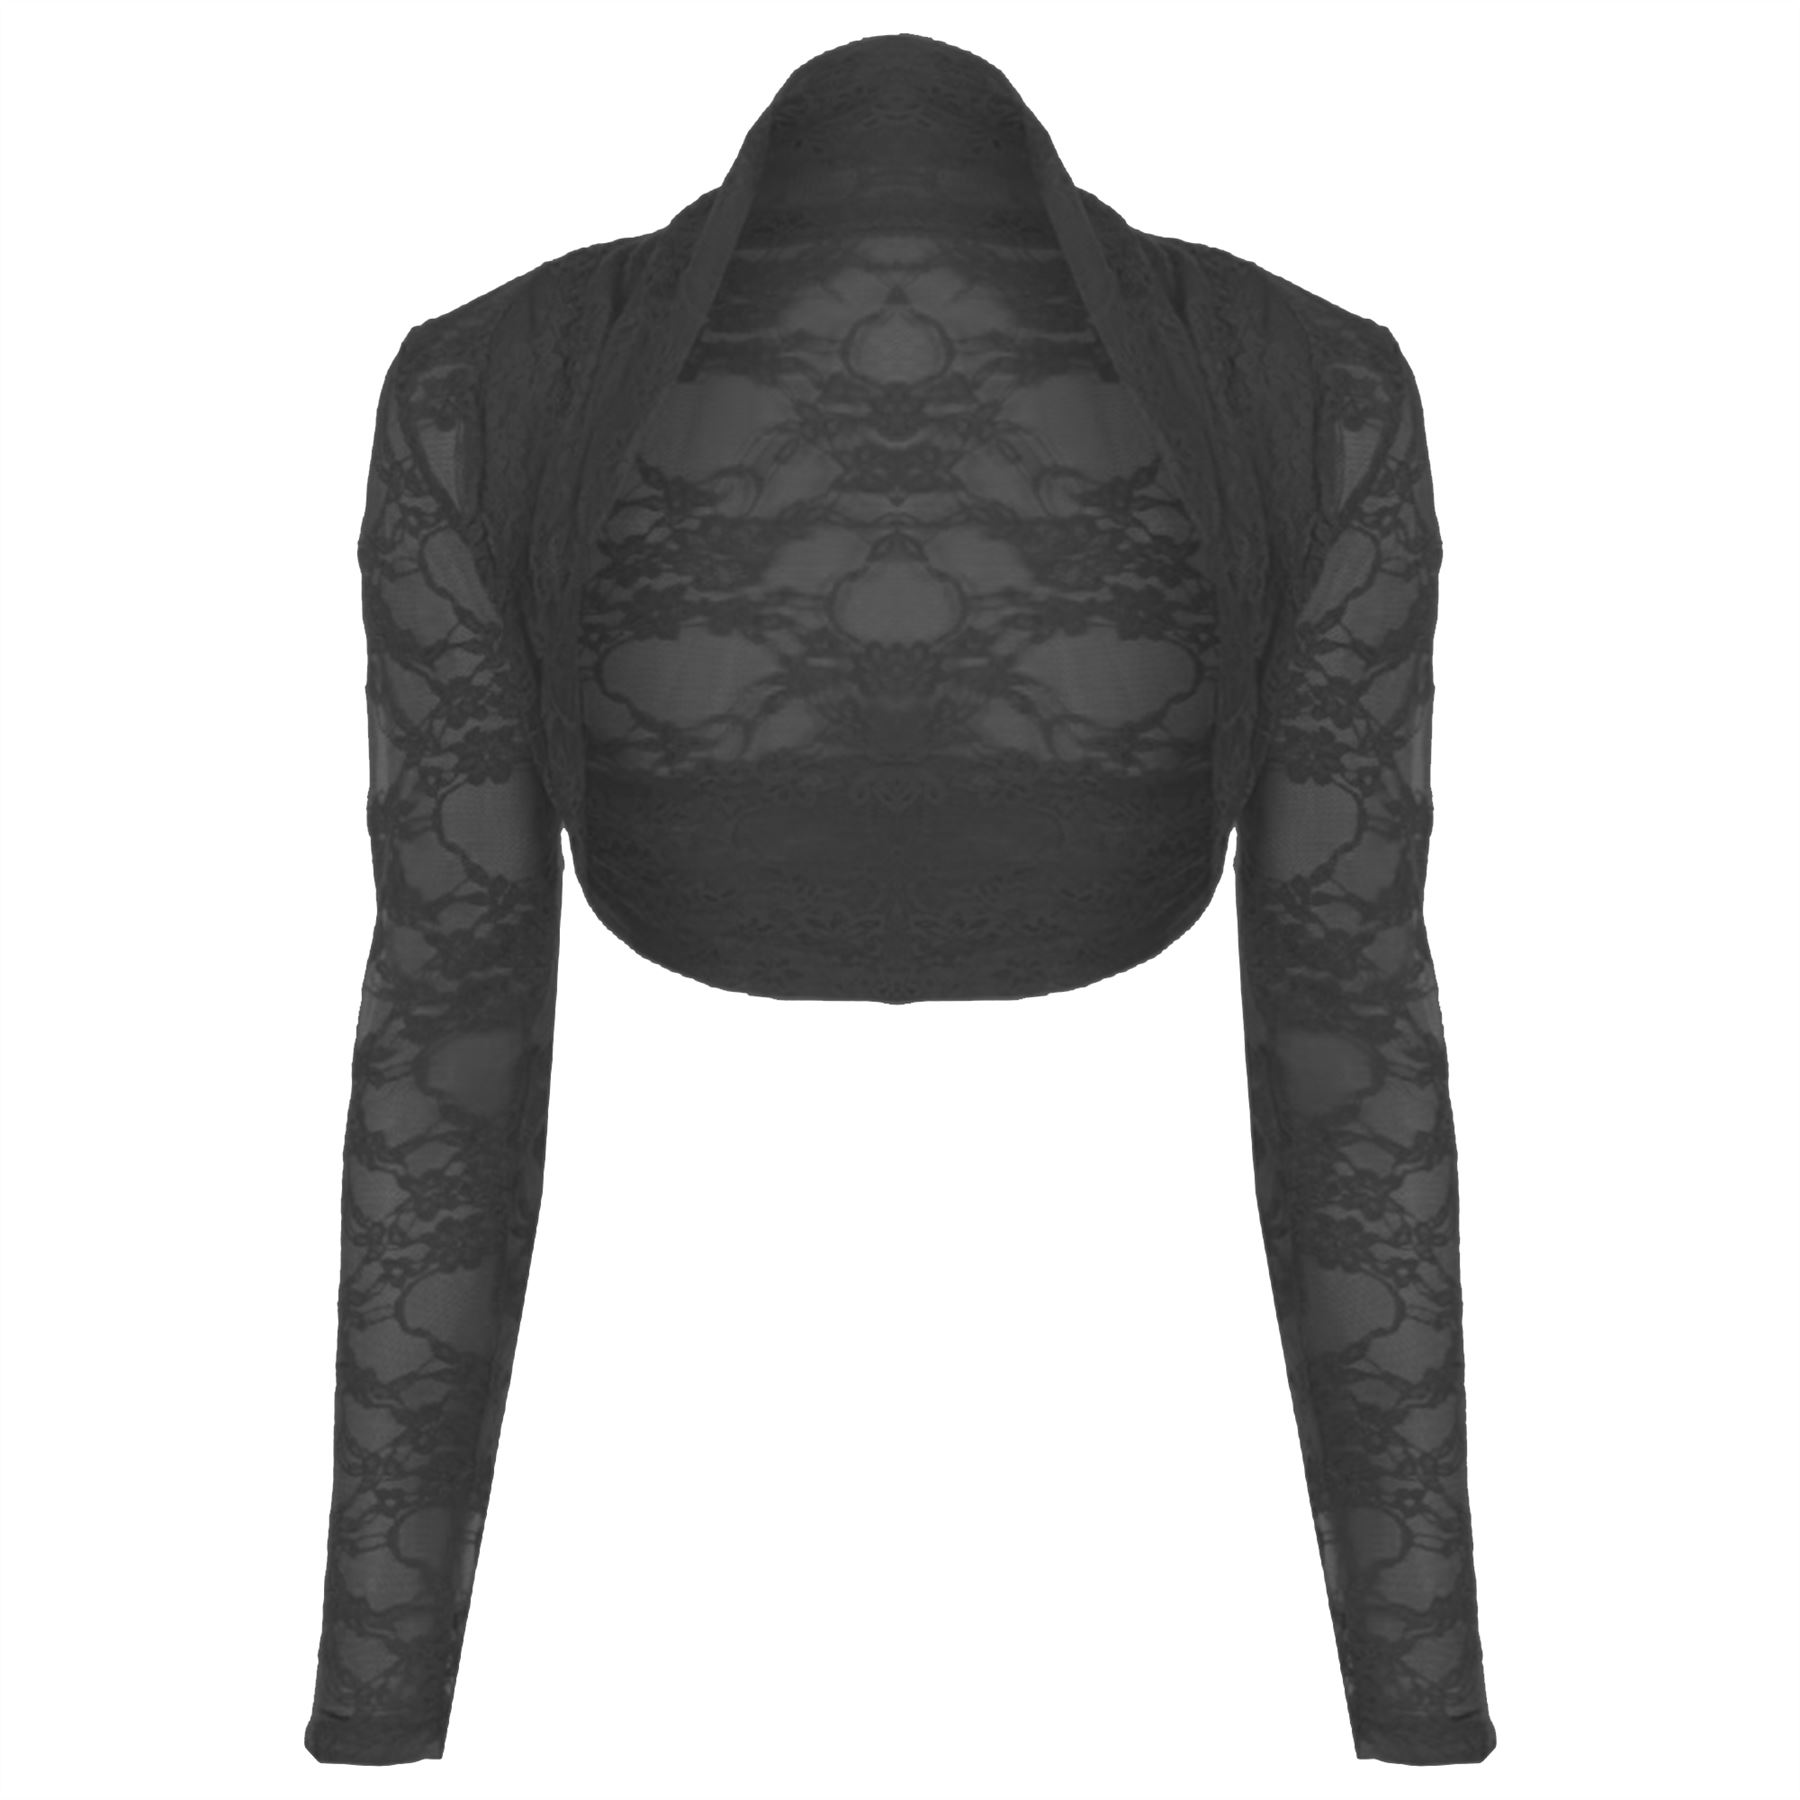 Womens-Ladies-Lace-Cropped-Open-Bolero-Long-Sleeve-Cardigan-Shrug-Top-Plus-Sizes